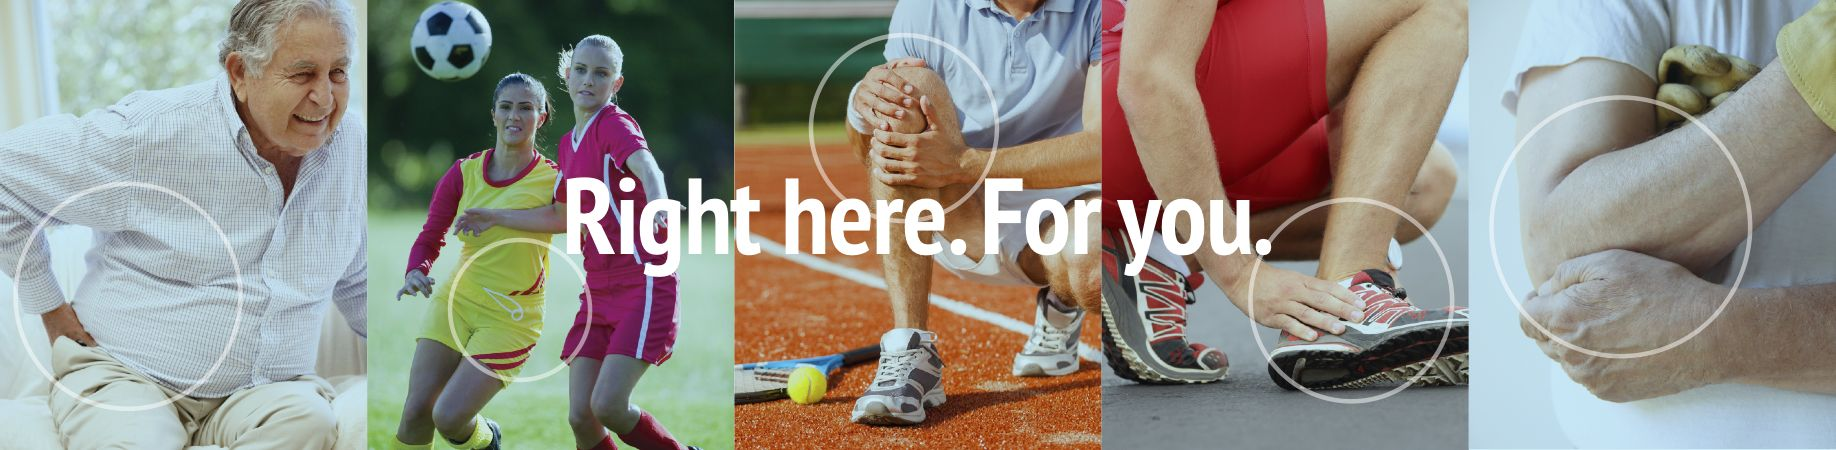 In need of orthopaedic care in the Muskegon & Grand Haven, MI area? Give us at Orthopaedic Associates of Muskegon a call to schedule an appointment today.